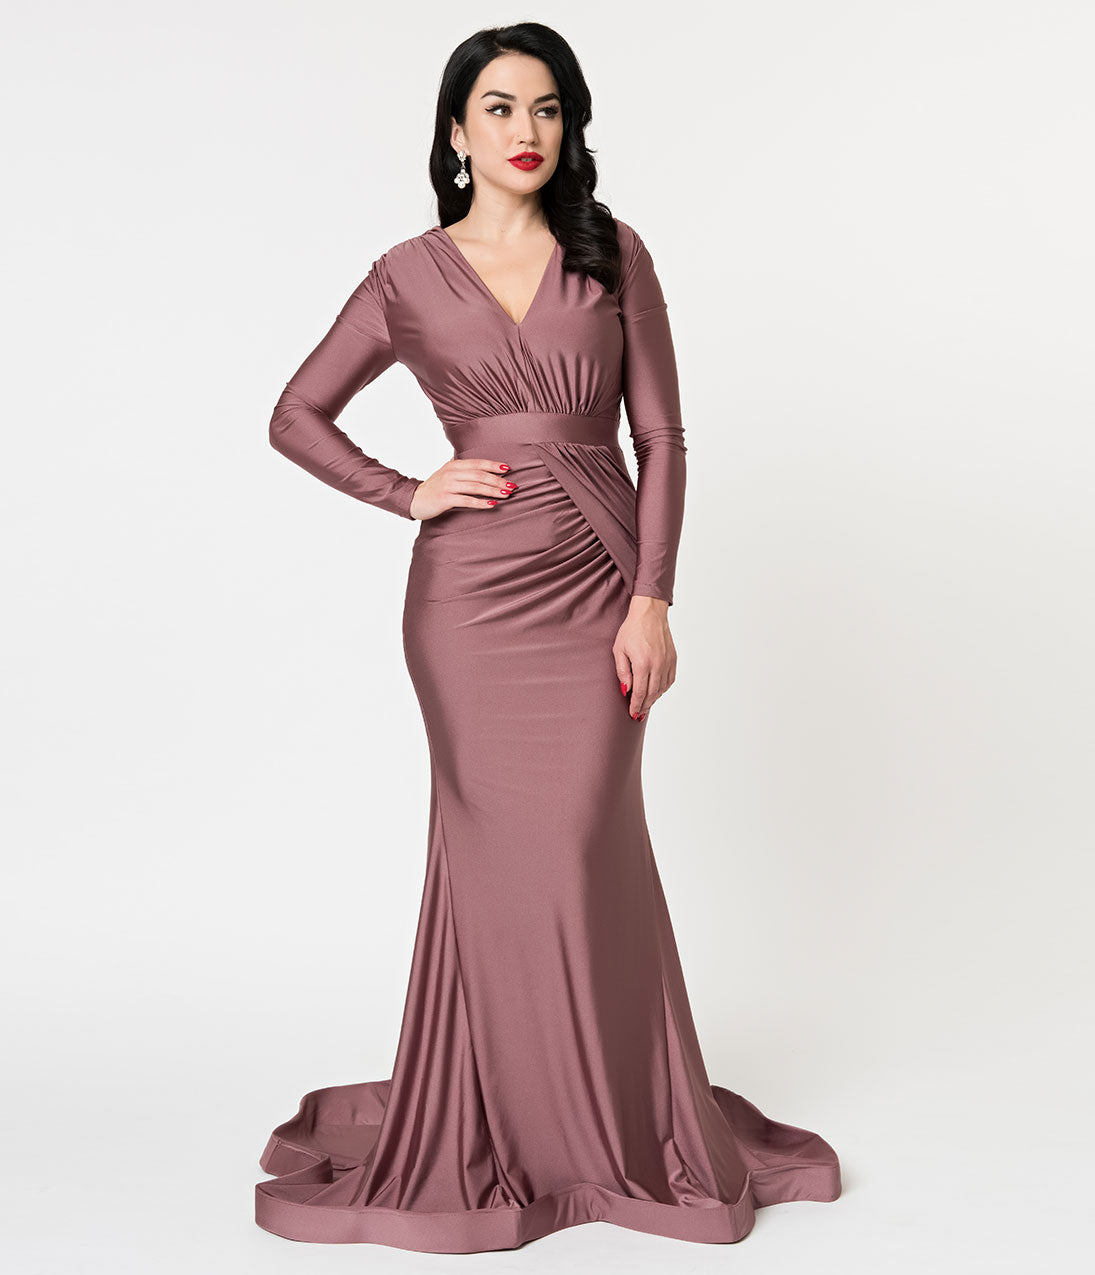 1930s Evening Dresses | Old Hollywood Dress Mauve Stretch Long Sleeve Modest Sheath Gown $132.00 AT vintagedancer.com